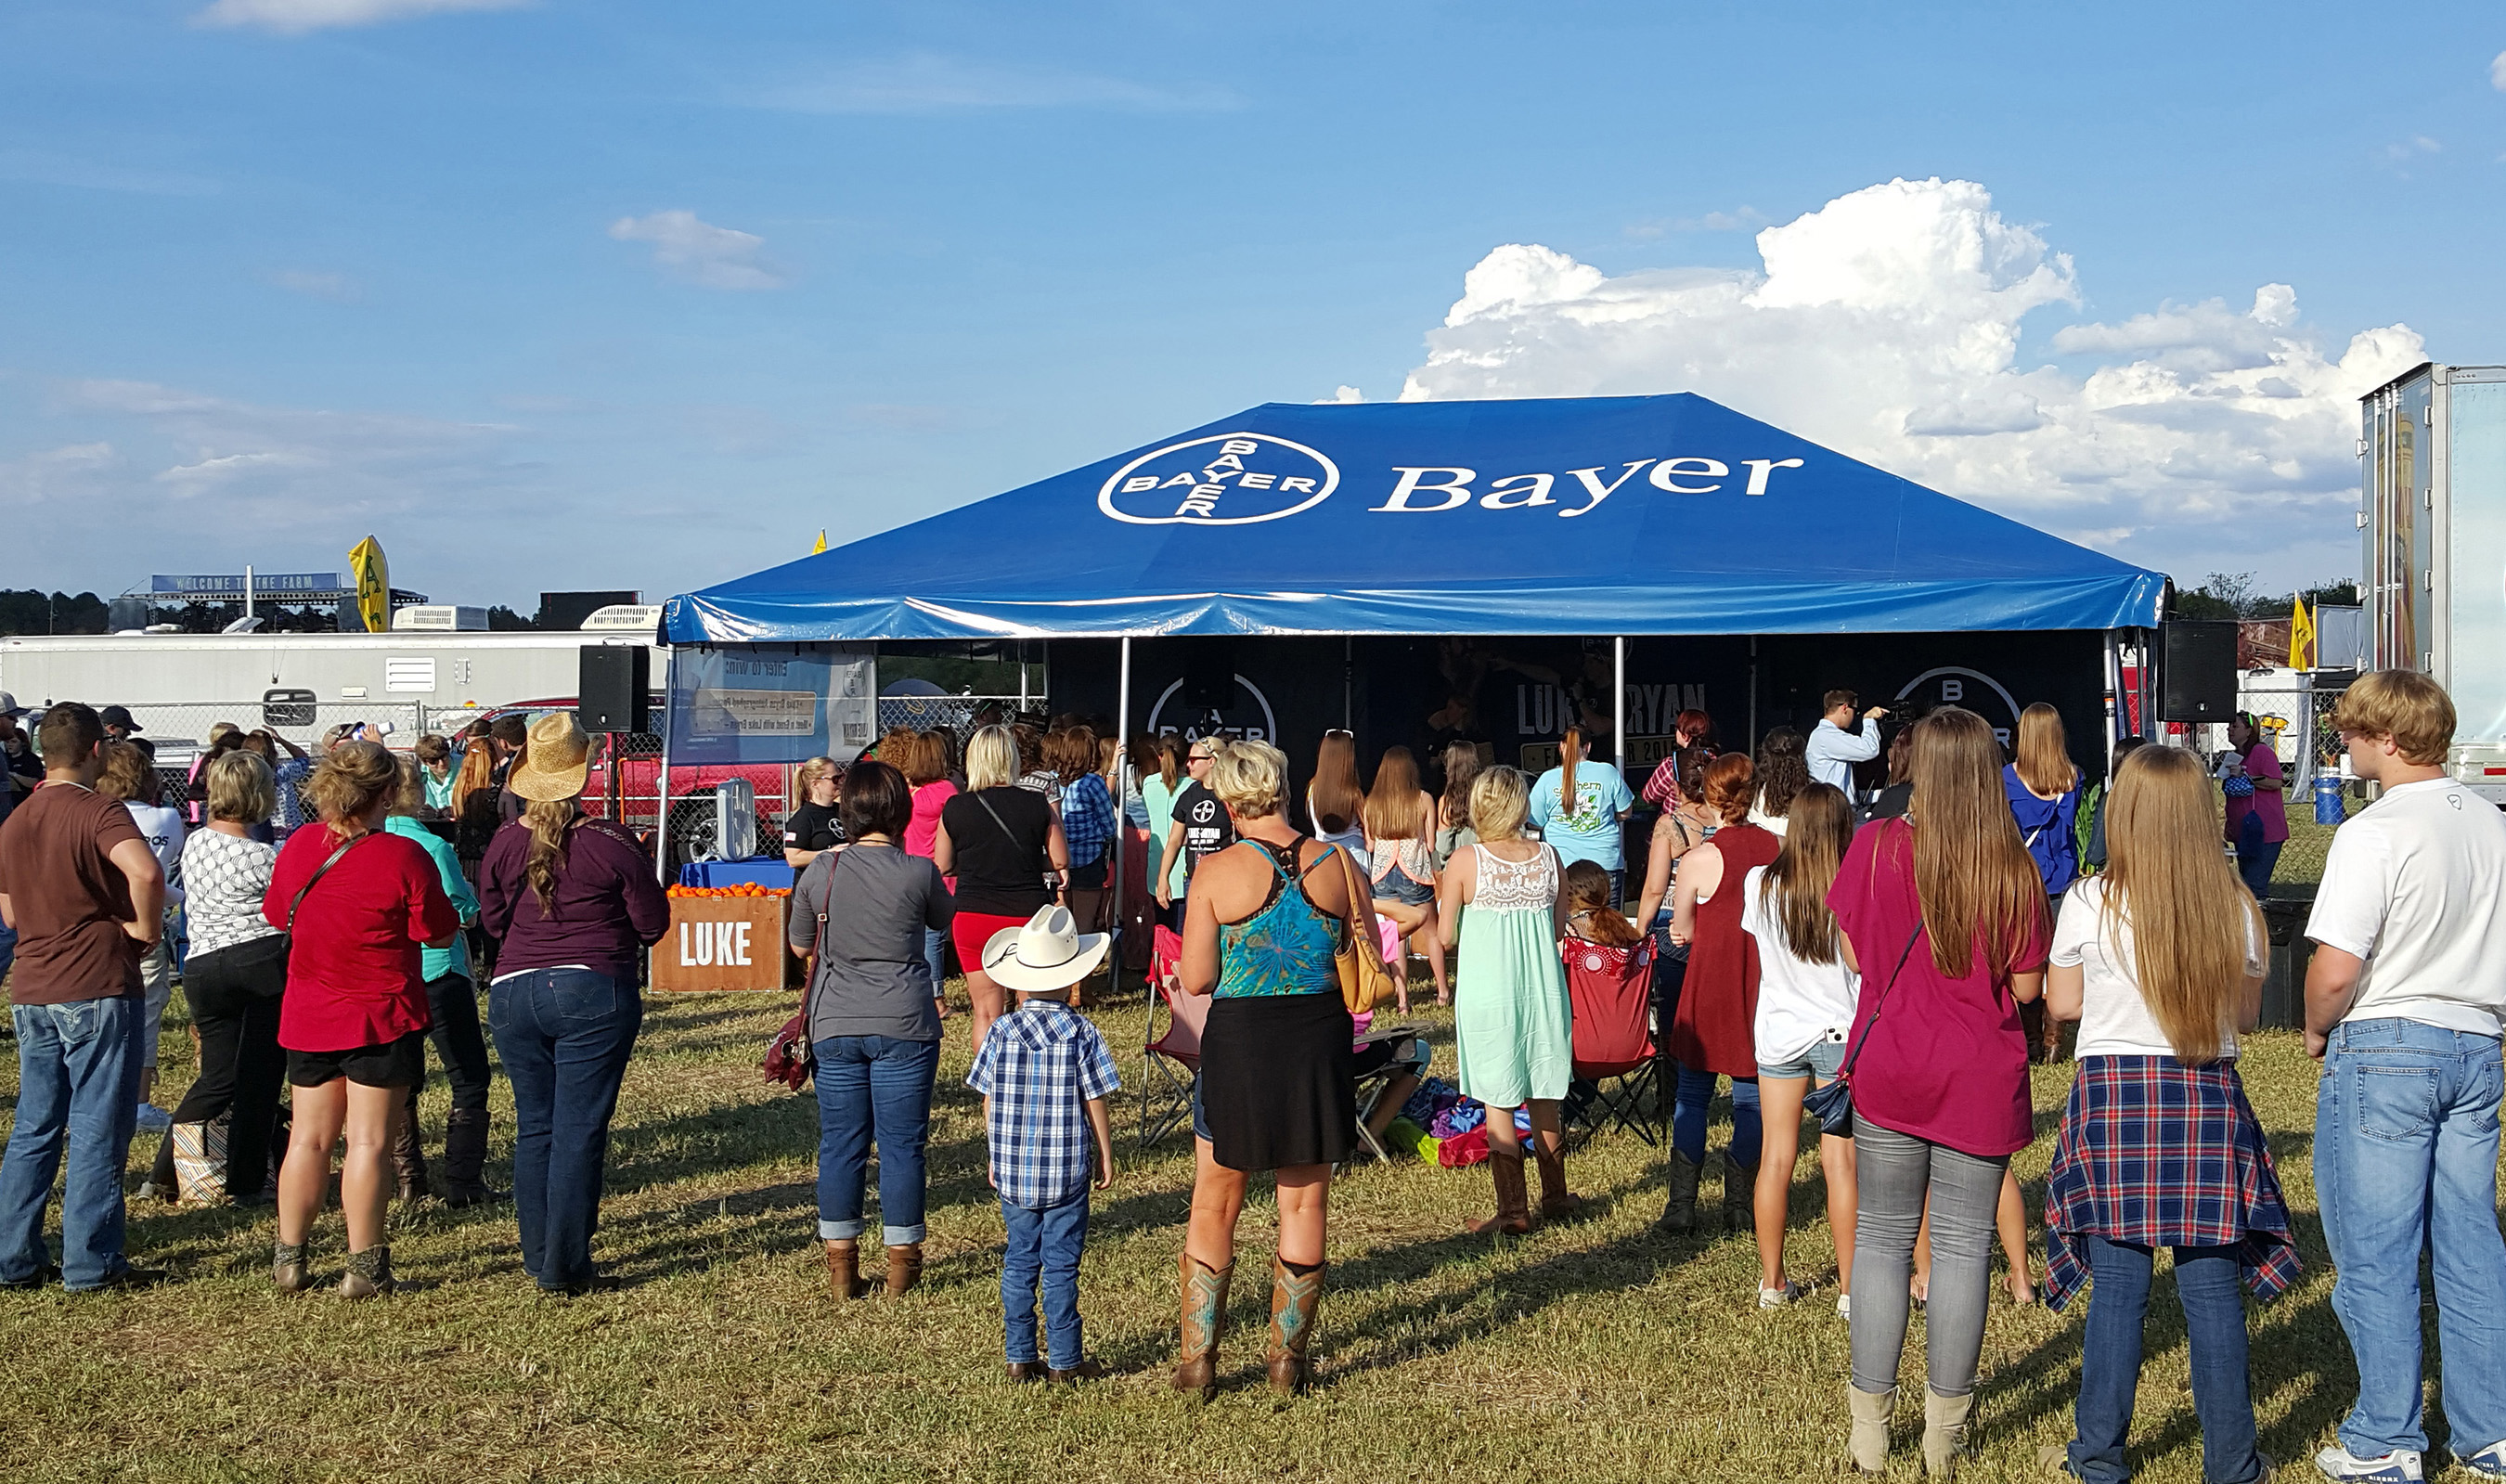 Bayer is proud to partner with Luke Bryan to give back to farming communities, and help recognize the important role farmers play in feeding the world